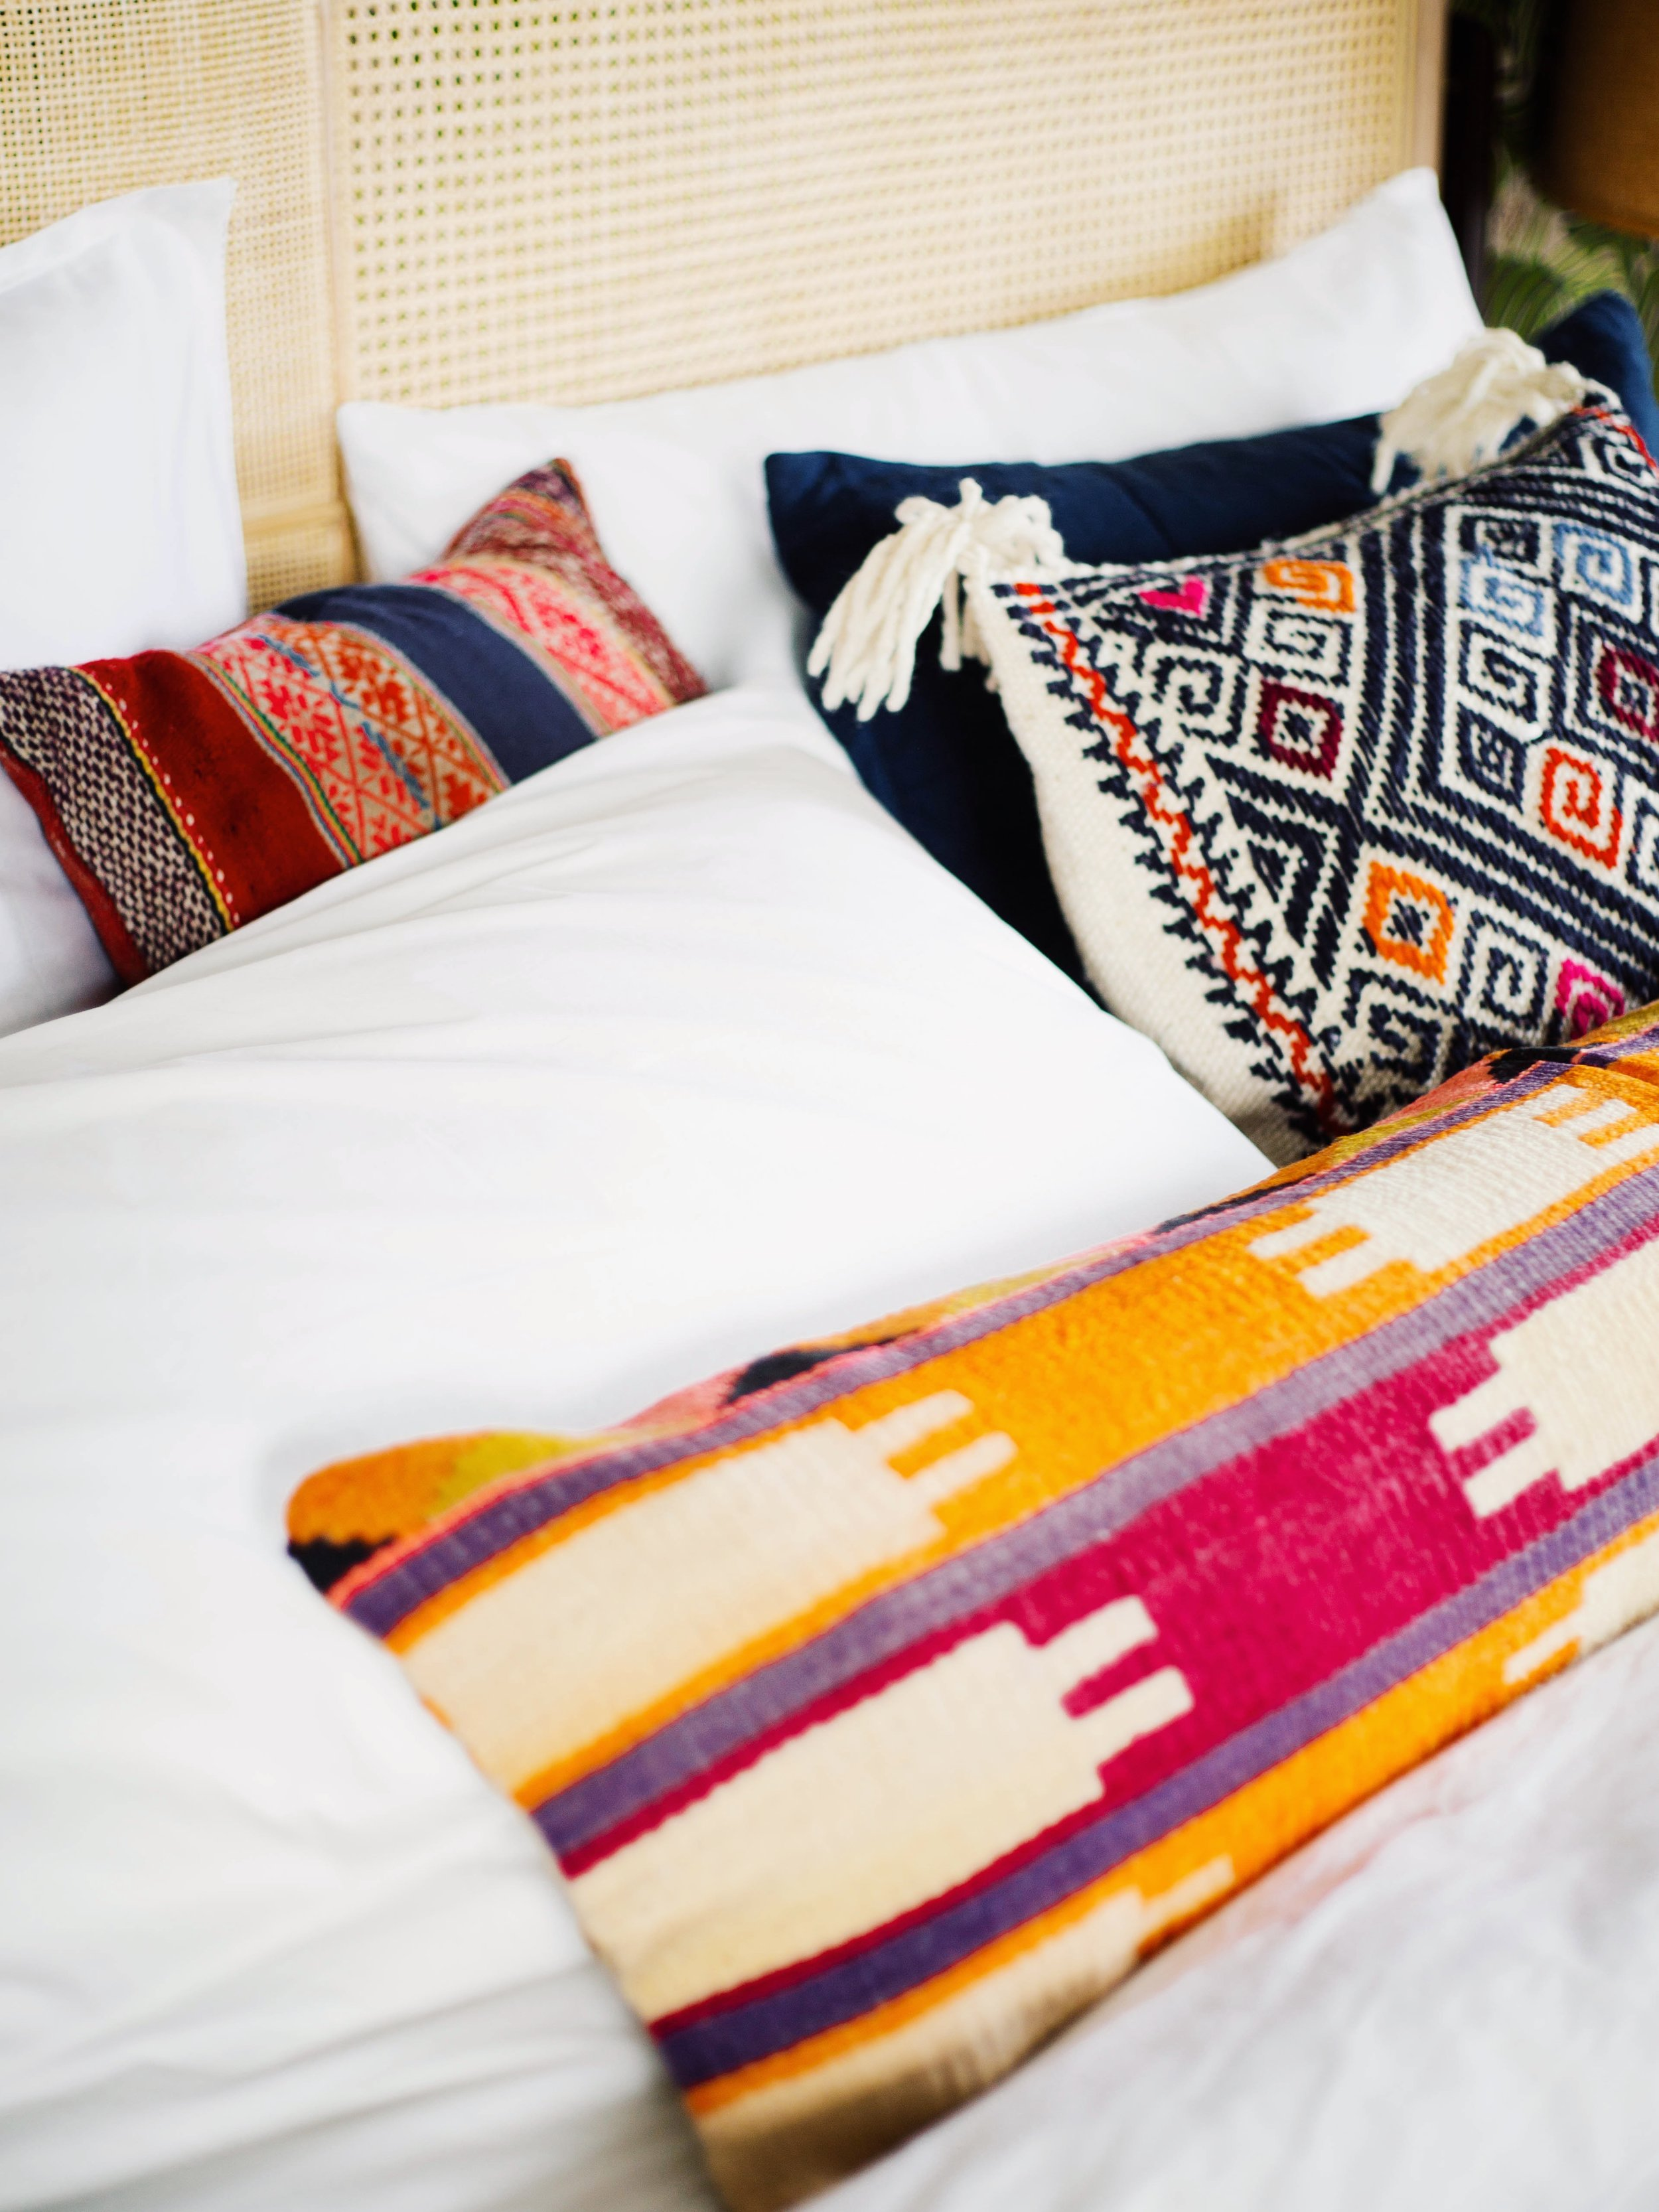 King Size Bed Throws 3 Ways To Style Your Pillows On A King Size Bed Old Brand New